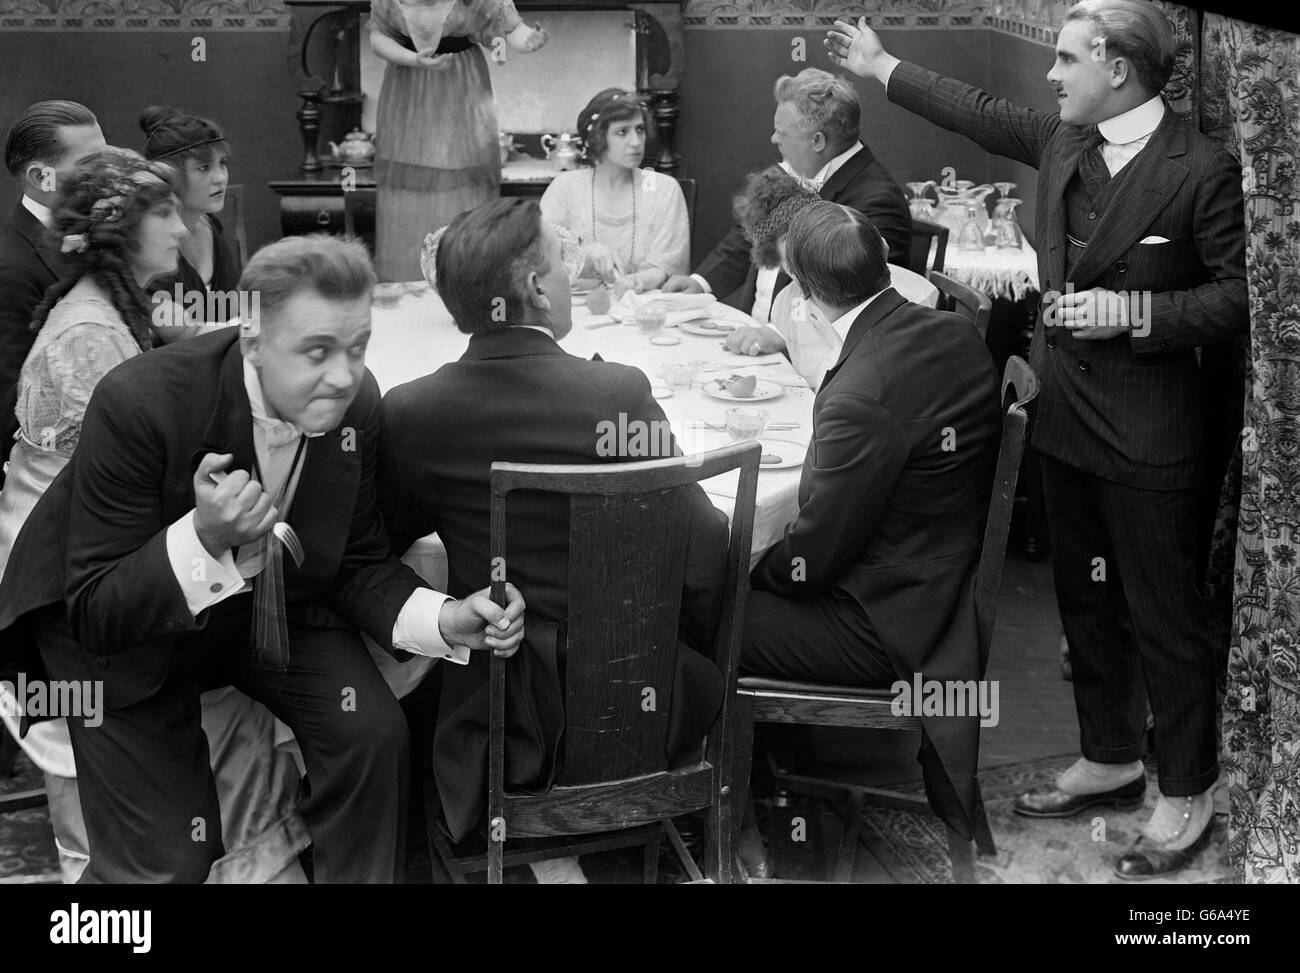 1910s MAN CLUTCHING FORK SKULKING BEHIND GROUP AT DINNER TABLE SILENT MOVIE STILL - Stock Image